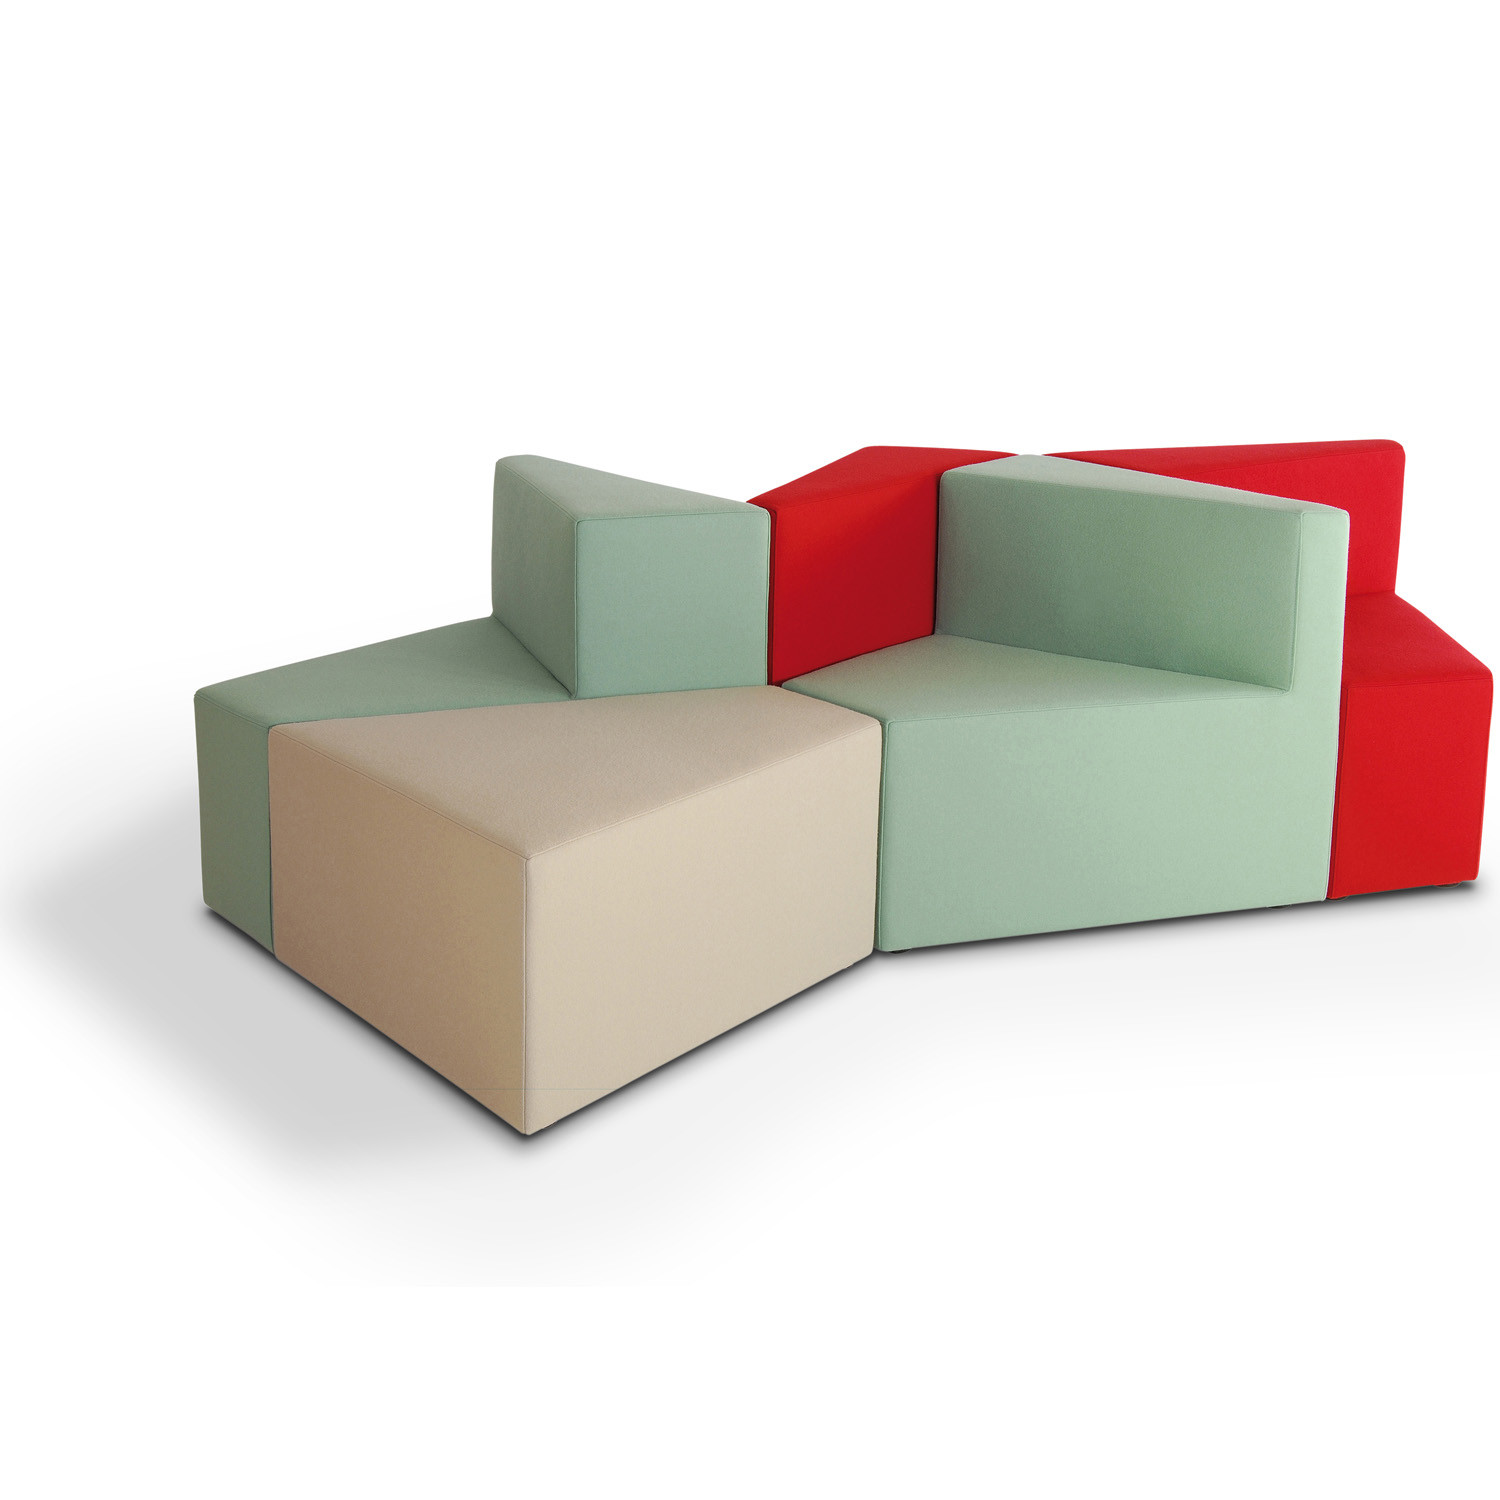 HM77 Modular Upholstered Seating